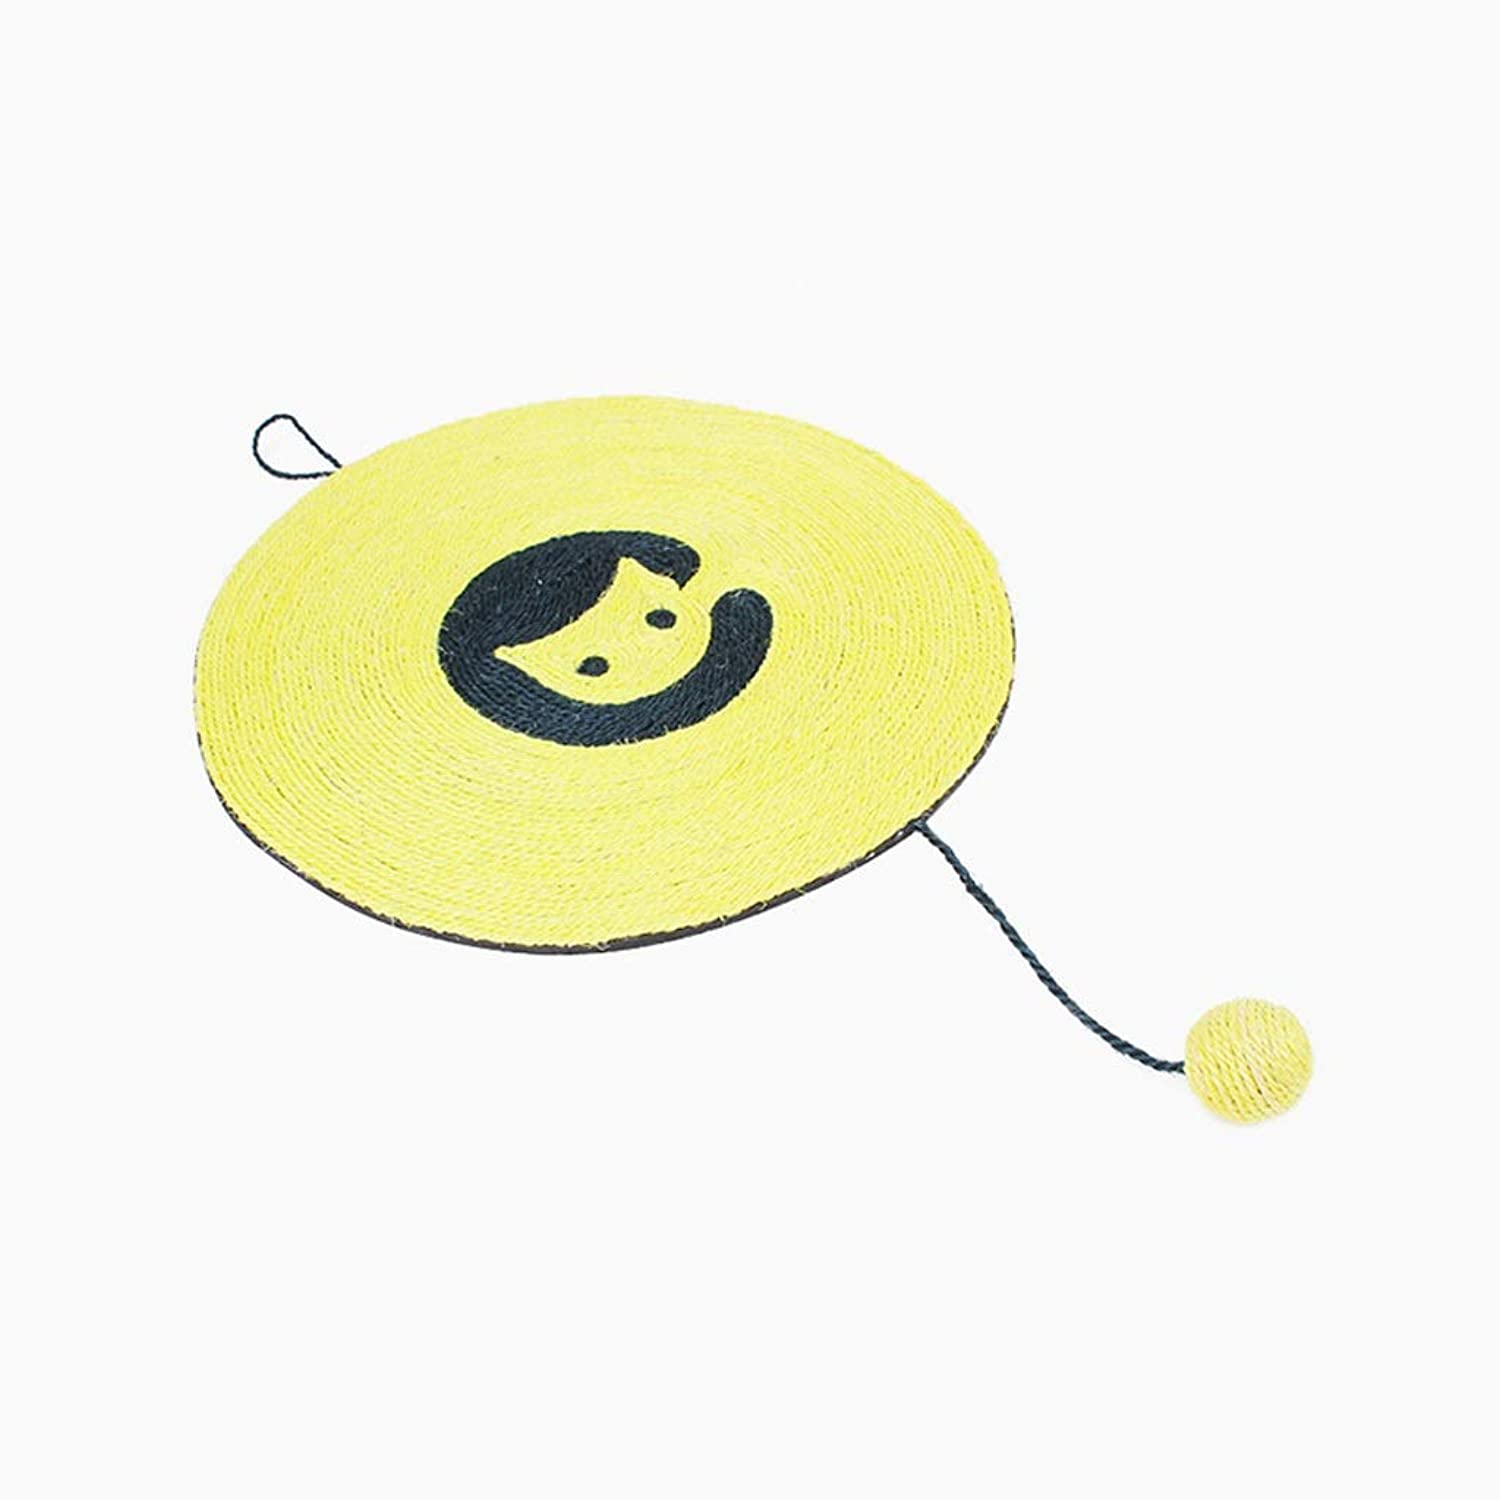 LFFMZB Cat Scratch Board Claw Claw cat Claw Board cat Scratch pad cat Toy Grinding Scratch Board cat Litter Toy wear a Good Gift for The cat